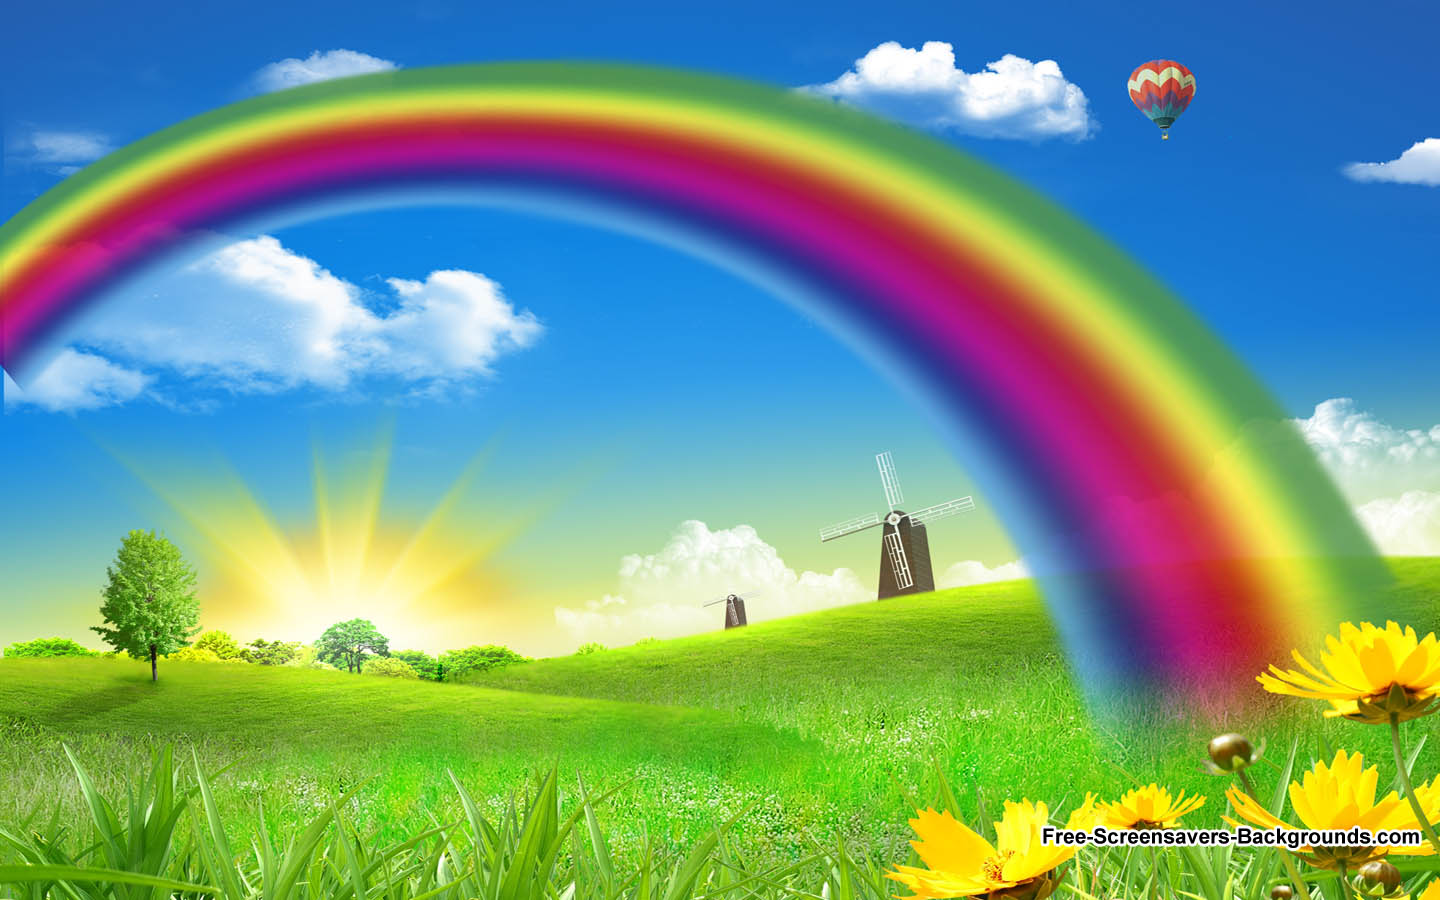 ClipartFest with rainbow Nature wallpaper